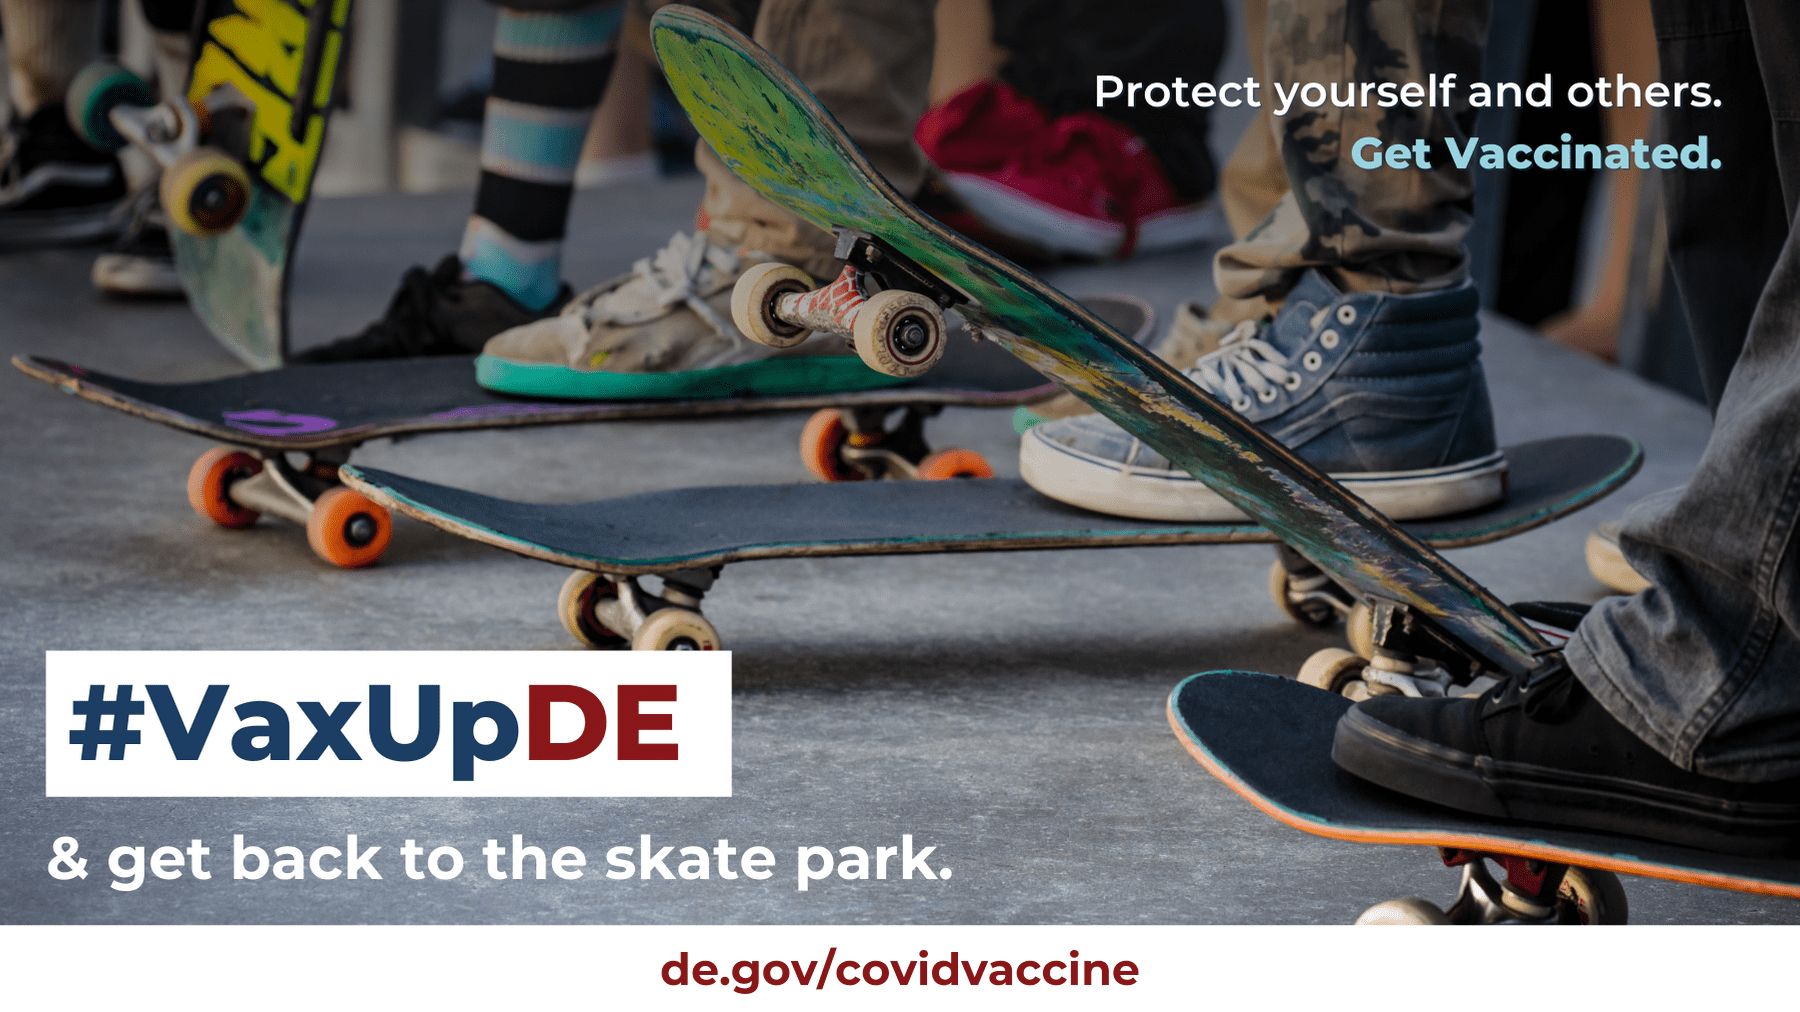 VaxUpDE. Protect yourself and others. Get Vaccinated. A lower view of teens standing together while propping up skateboards. Their converse and interesting skate board designs are shown.